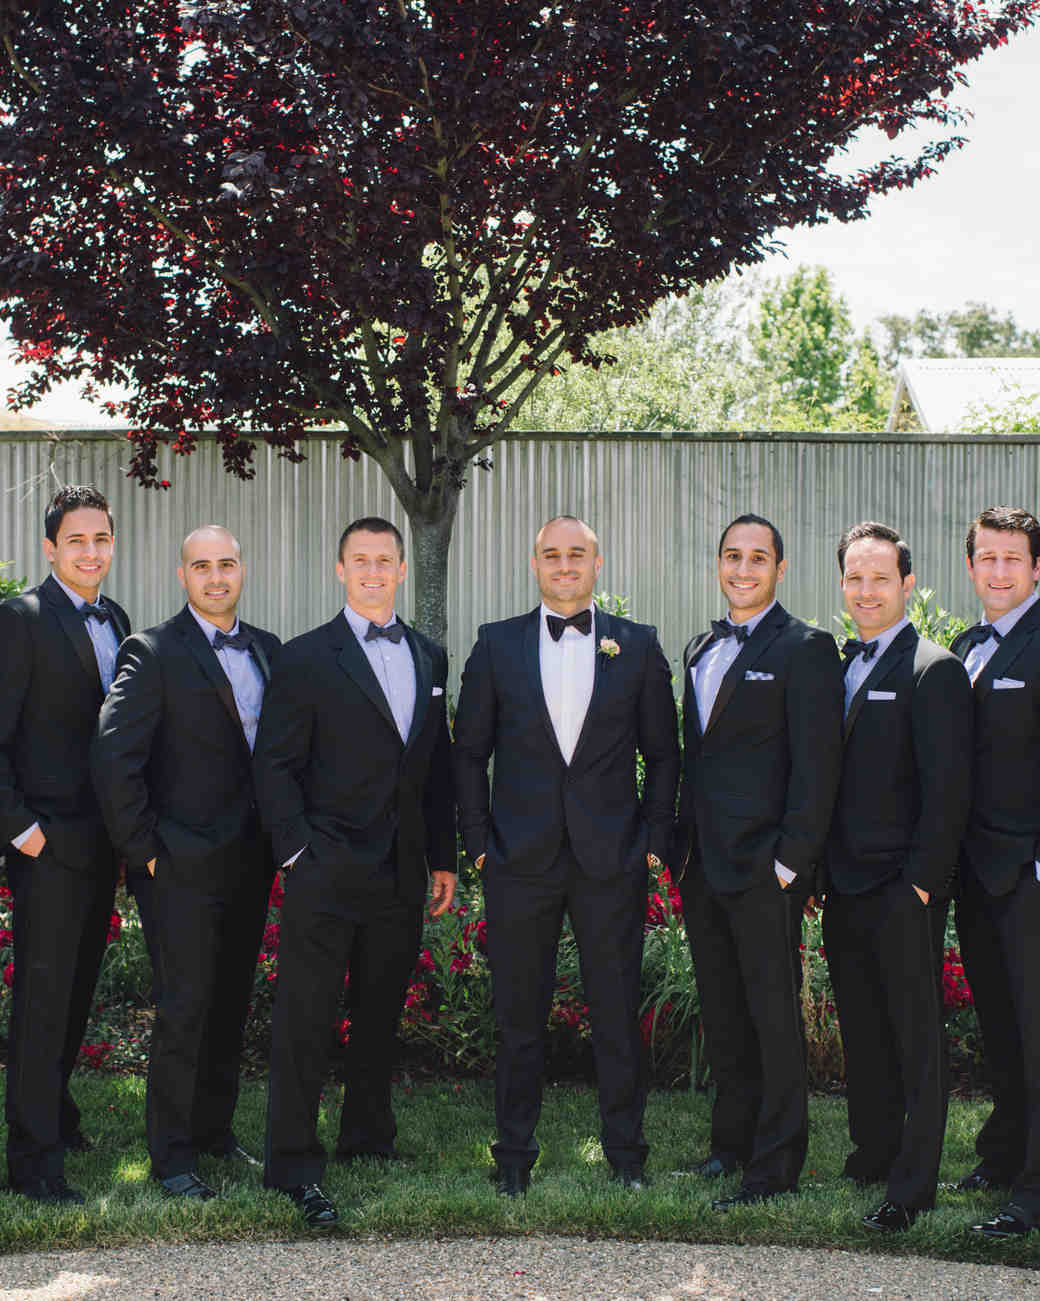 vanessa-joe-wedding-groomsmen-7545-s111736-1214.jpg